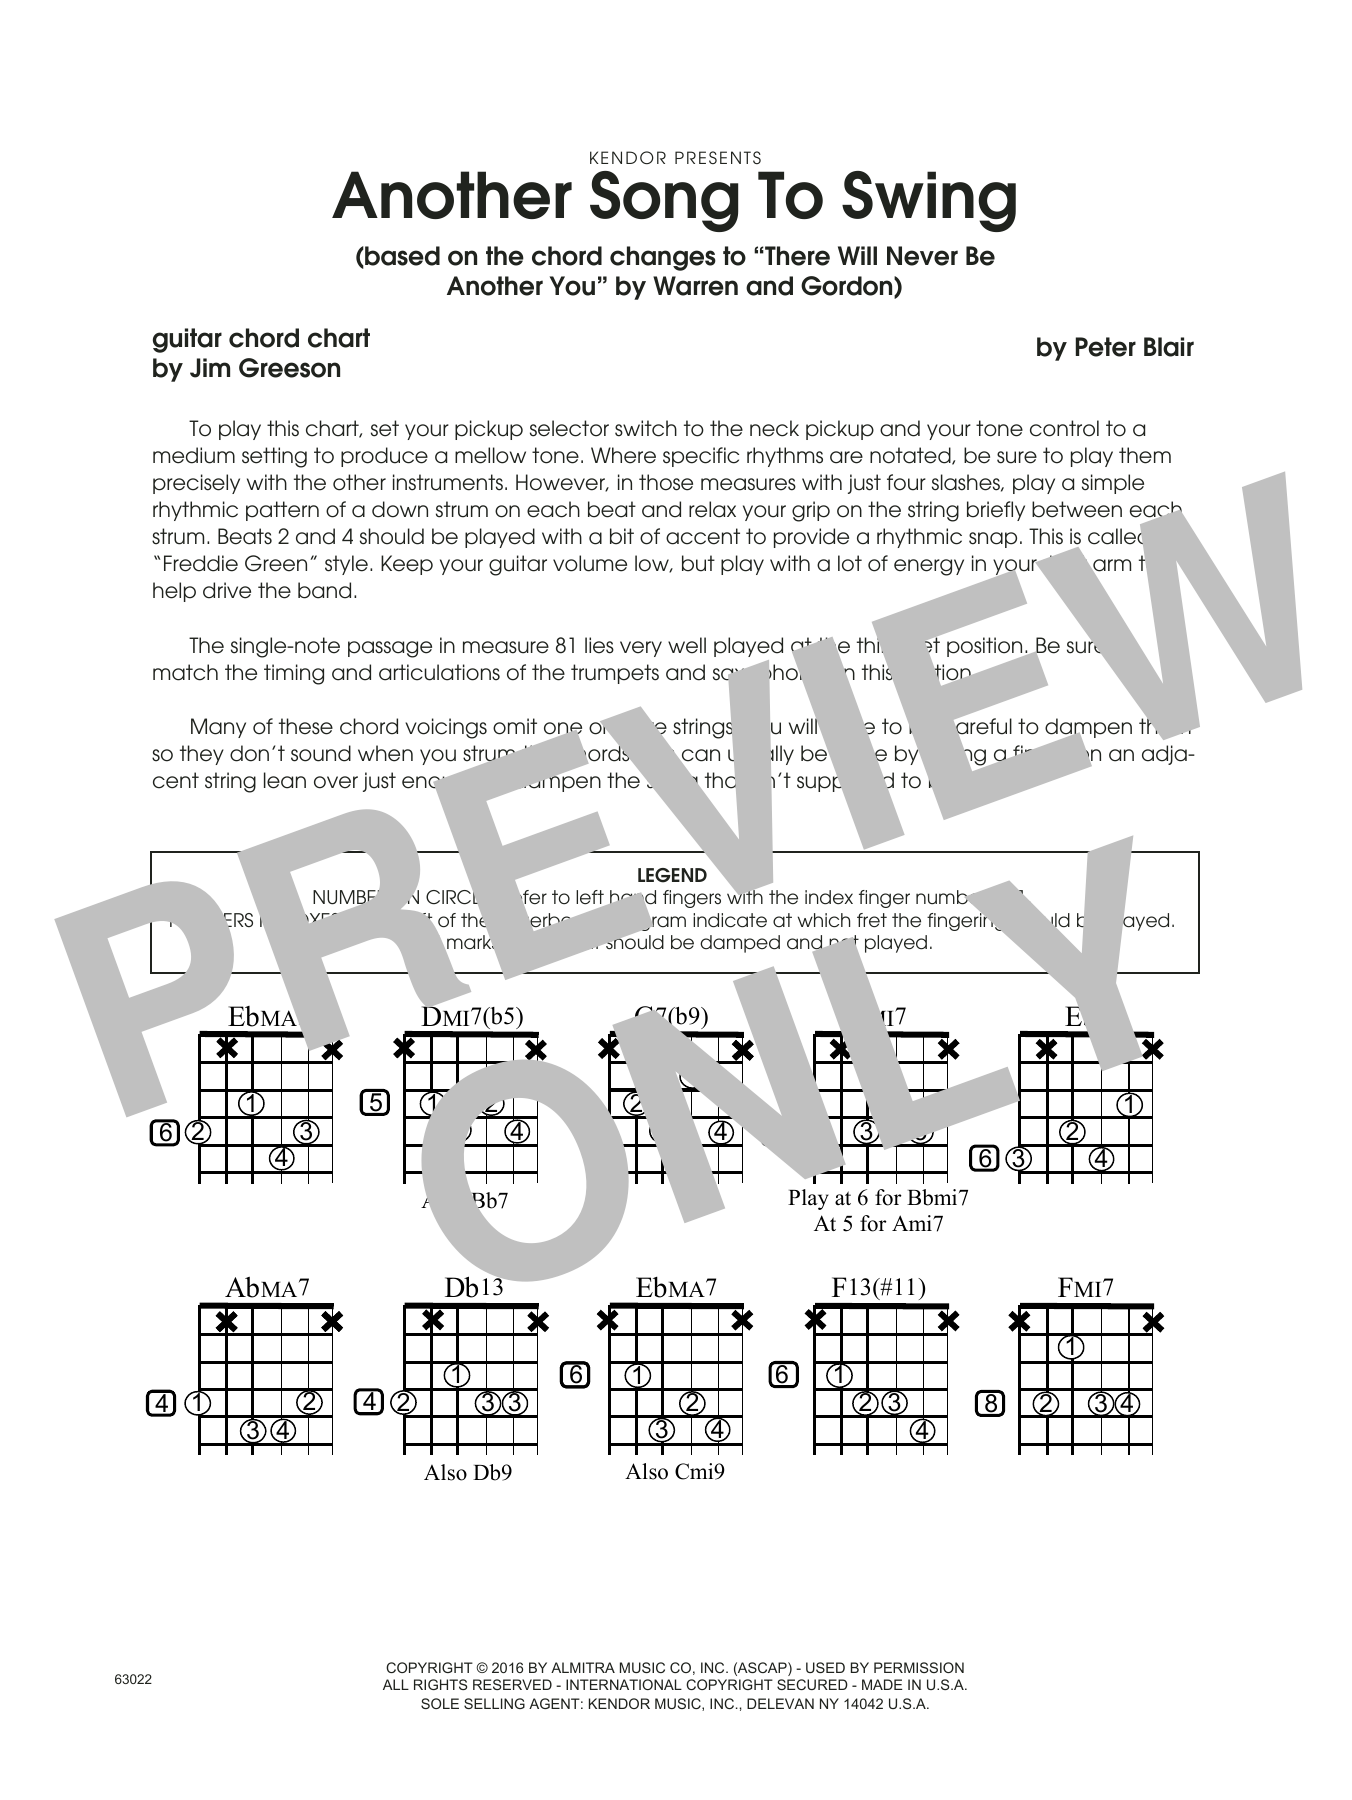 Another Song To Swing - Guitar Chord Chart Sheet Music